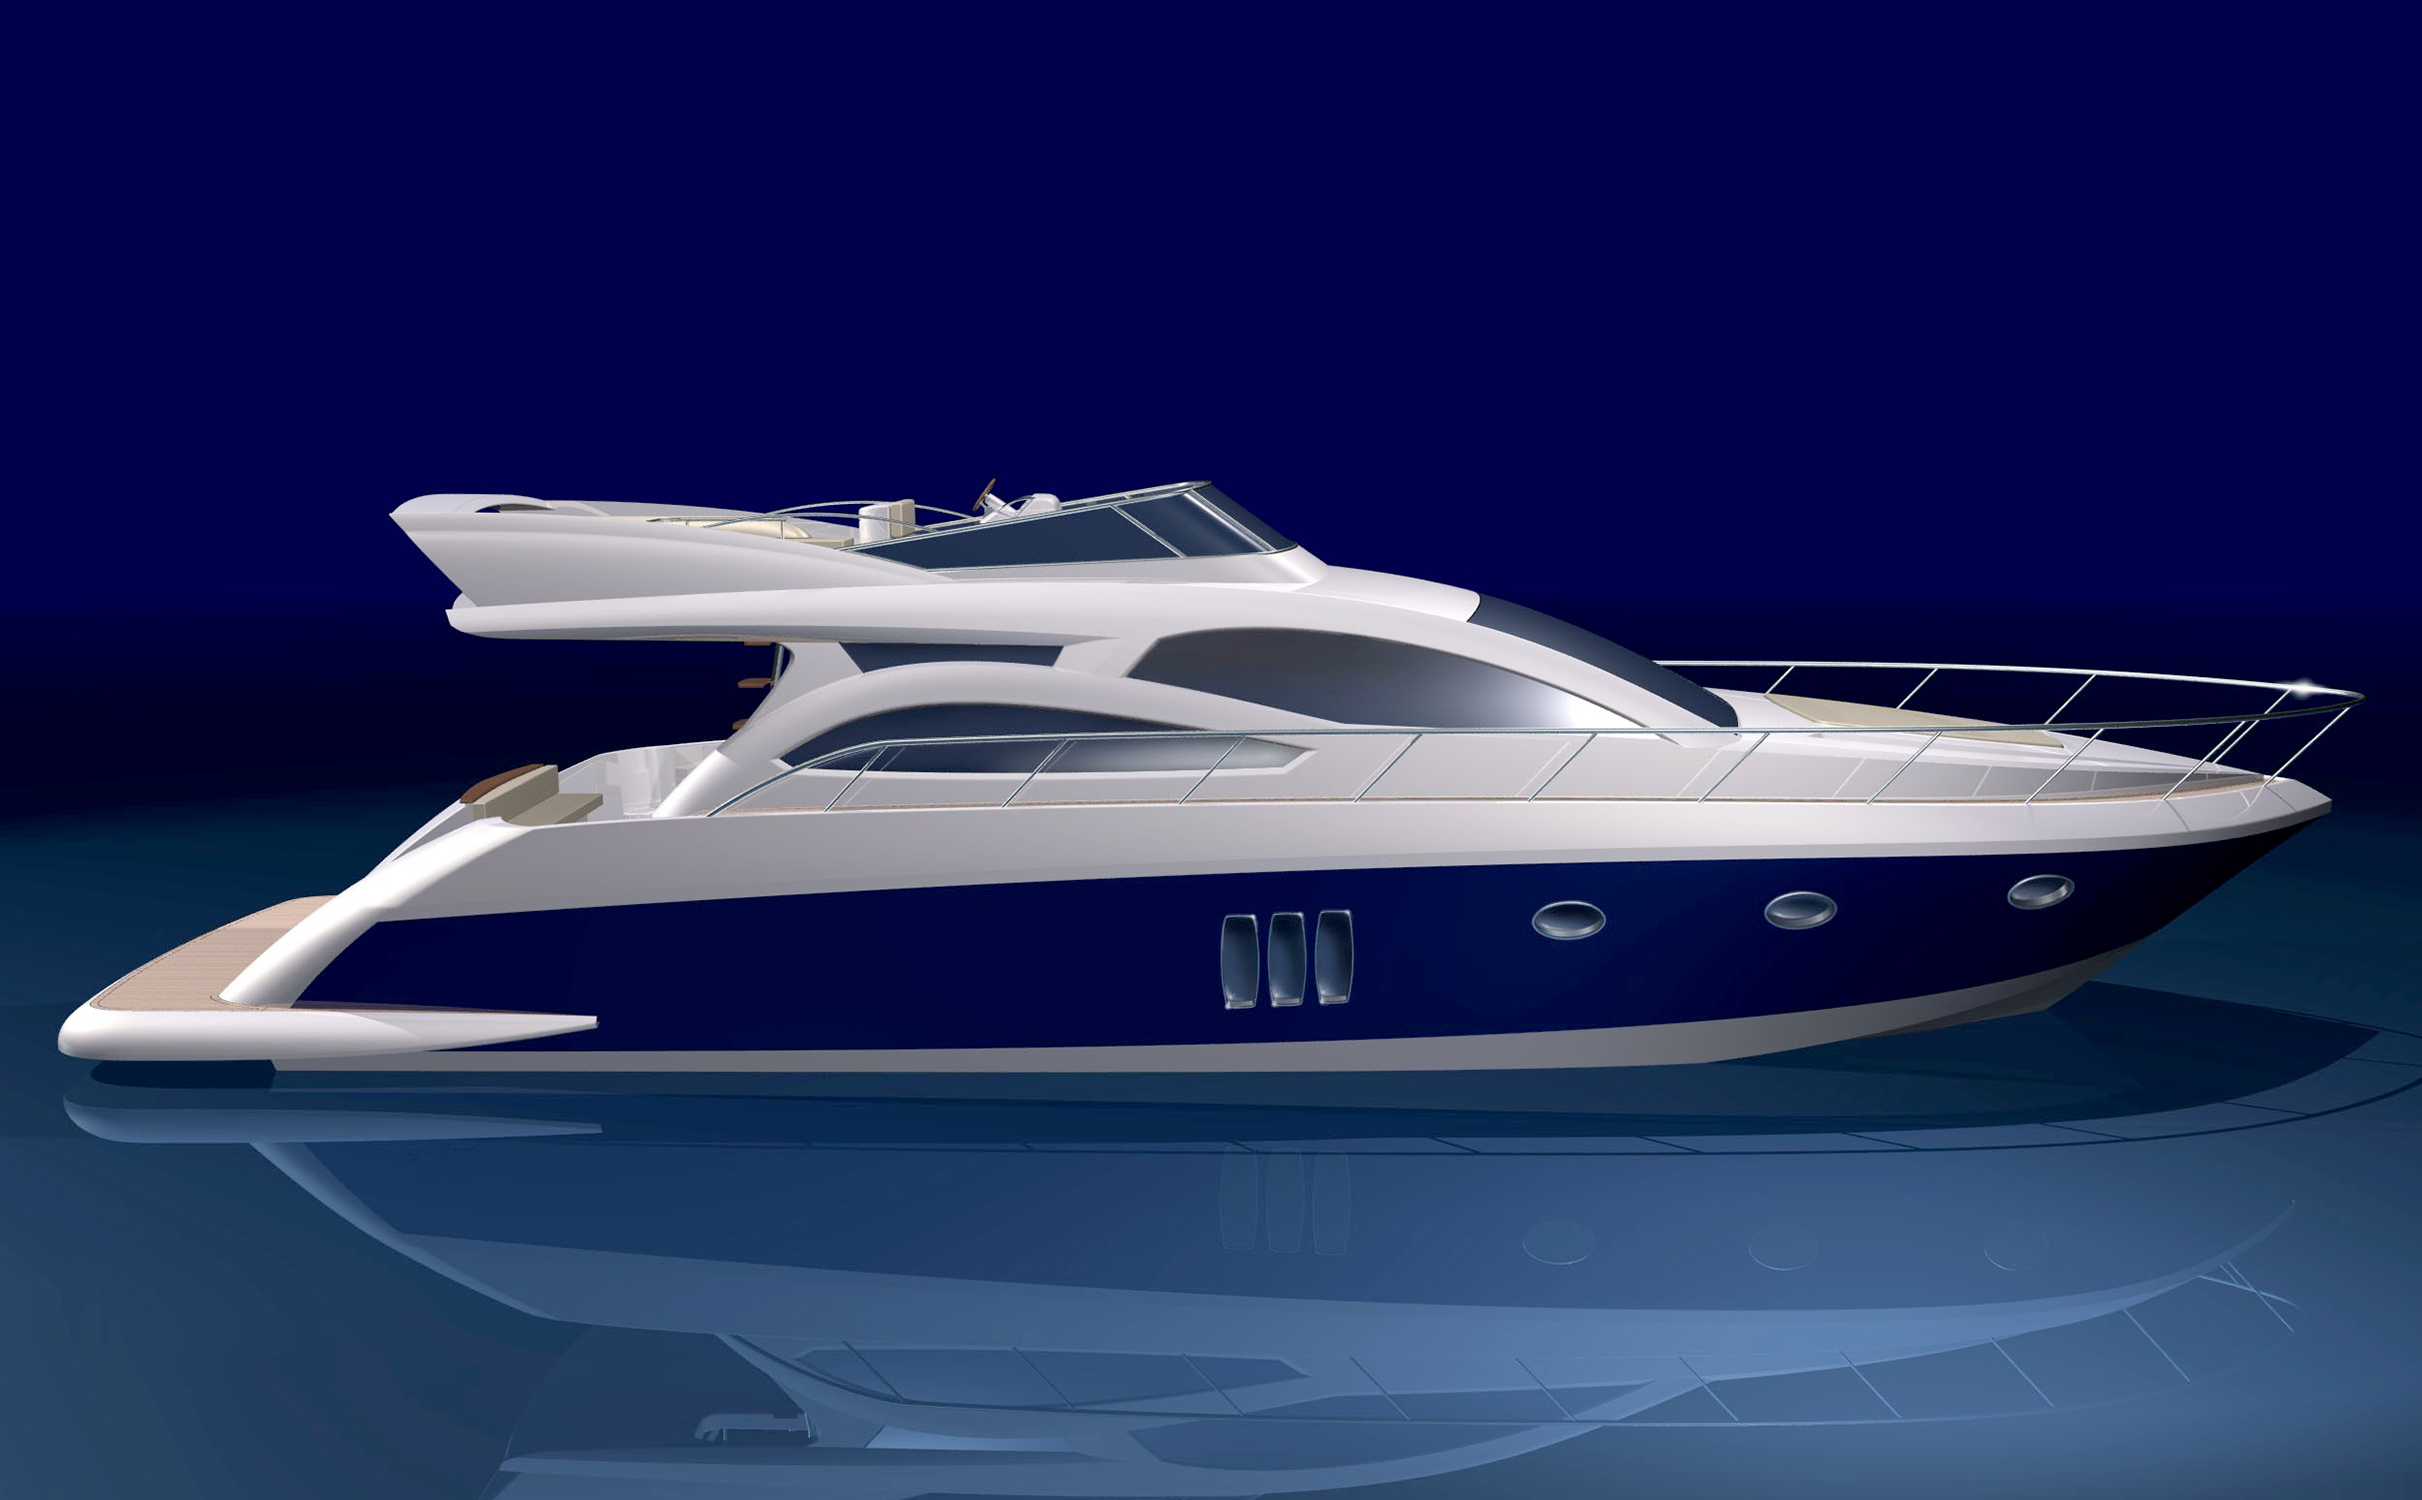 SCADA makes yachts and super yachts safer and easier to captain